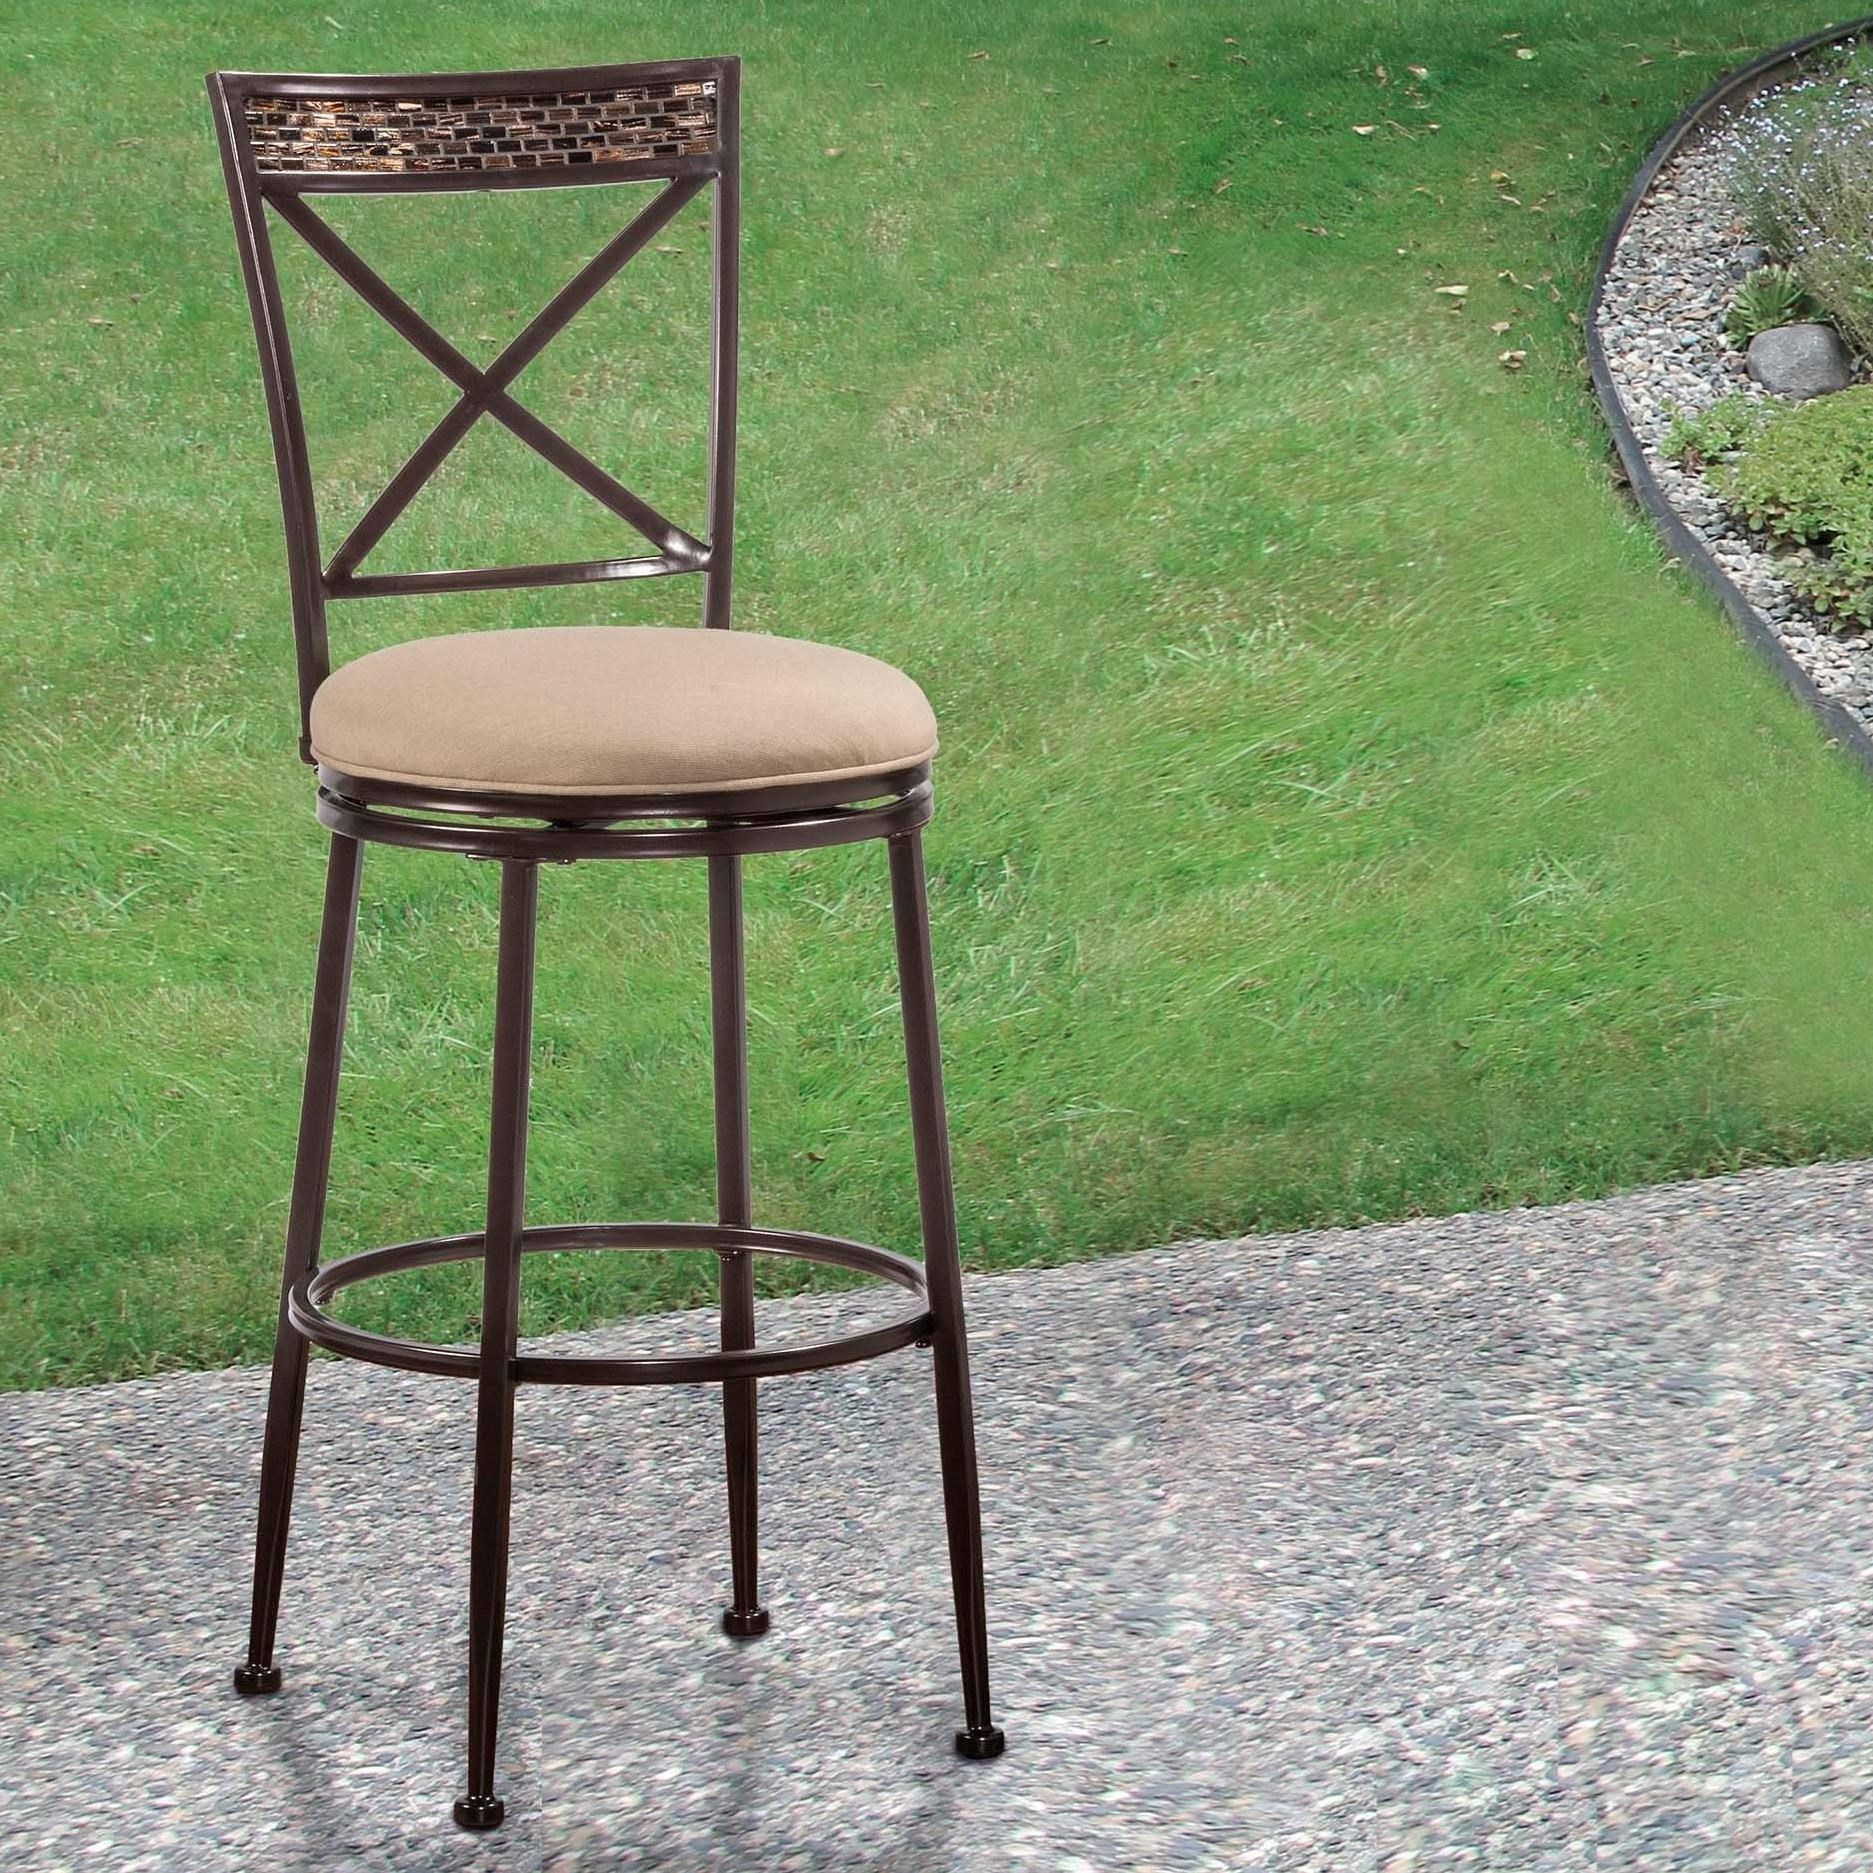 Indoor Outdoor Stools Swivel Counter Stool With X Back